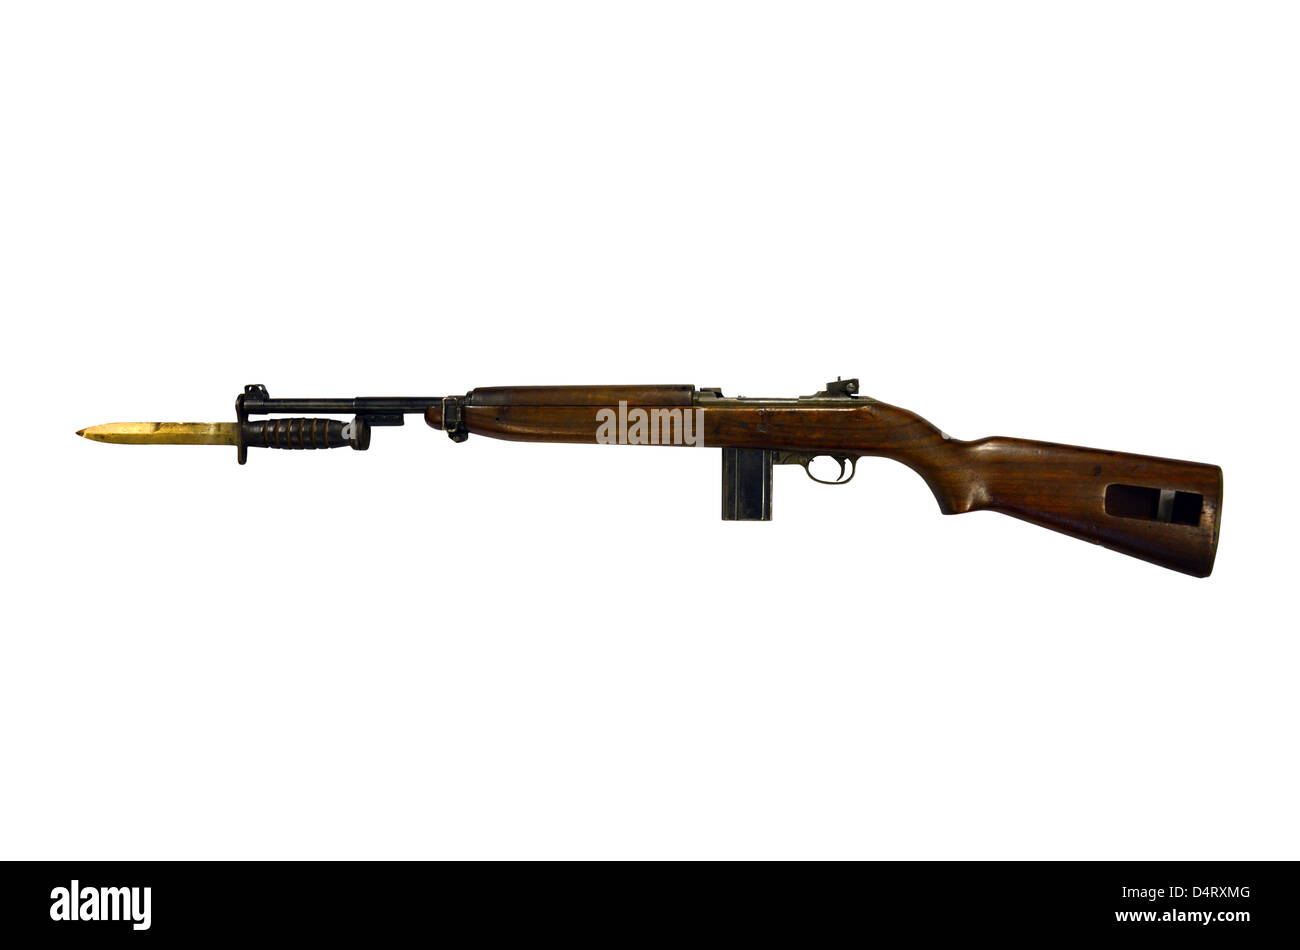 Semi-automatic M1 Carbine, a standard firearm for the U.S. military in the World War II era. - Stock Image